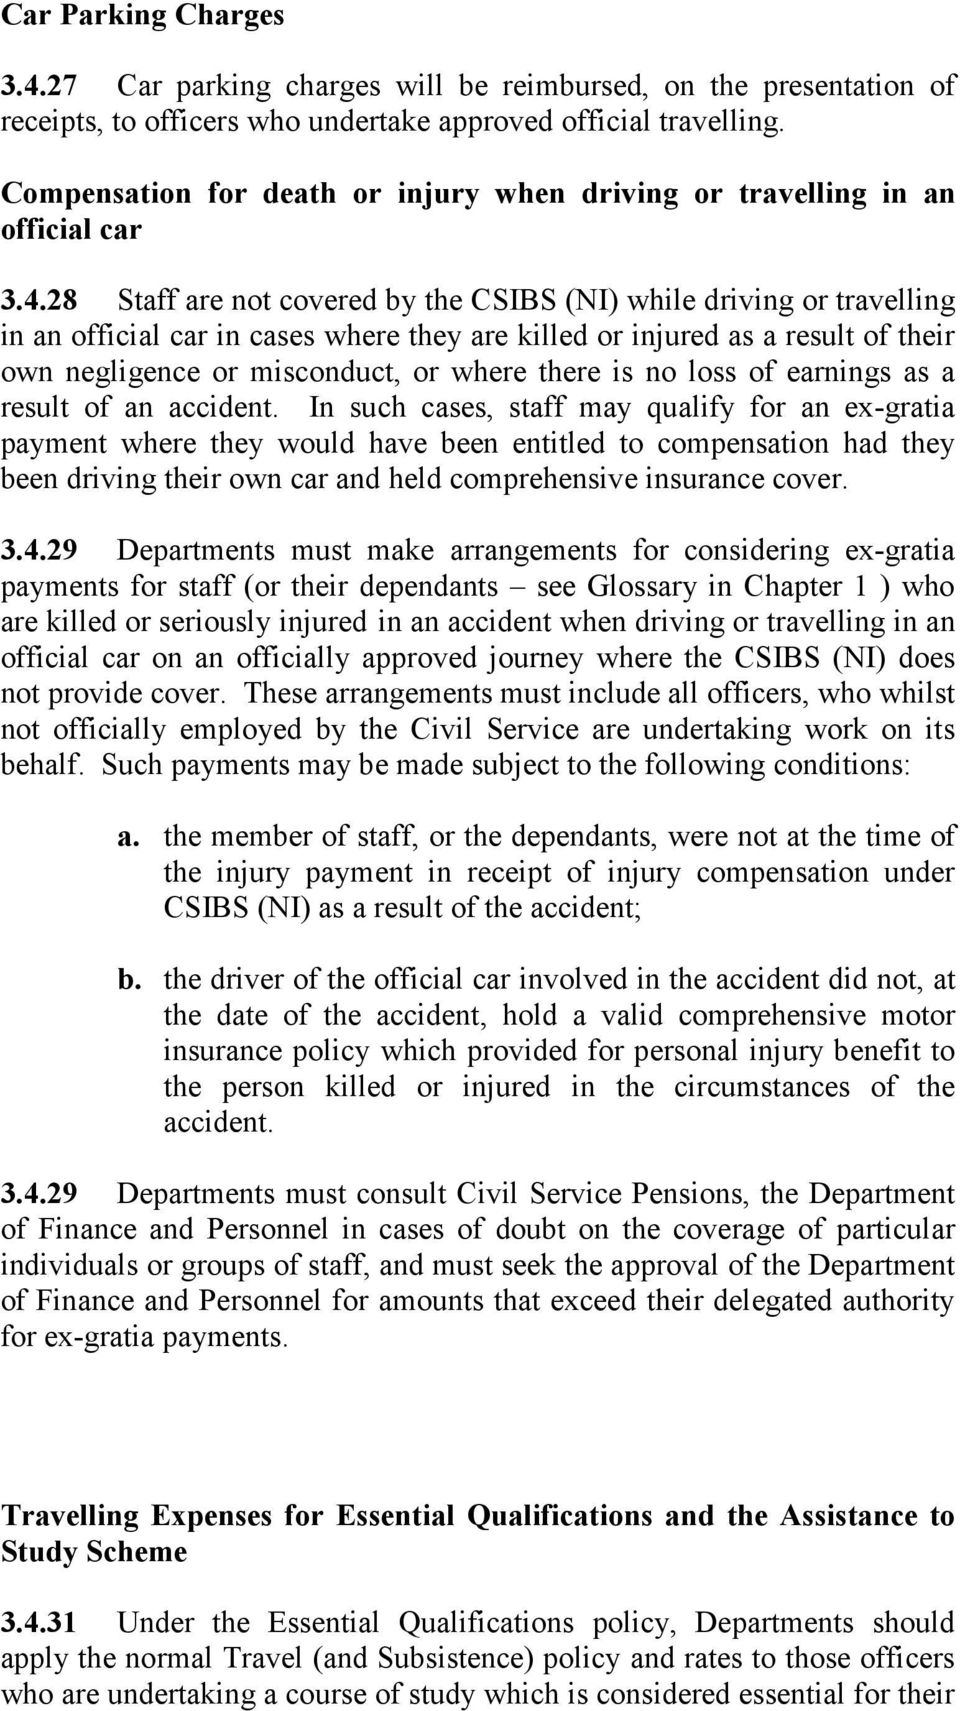 28 Staff are not covered by the CSIBS (NI) while driving or travelling in an official car in cases where they are killed or injured as a result of their own negligence or misconduct, or where there